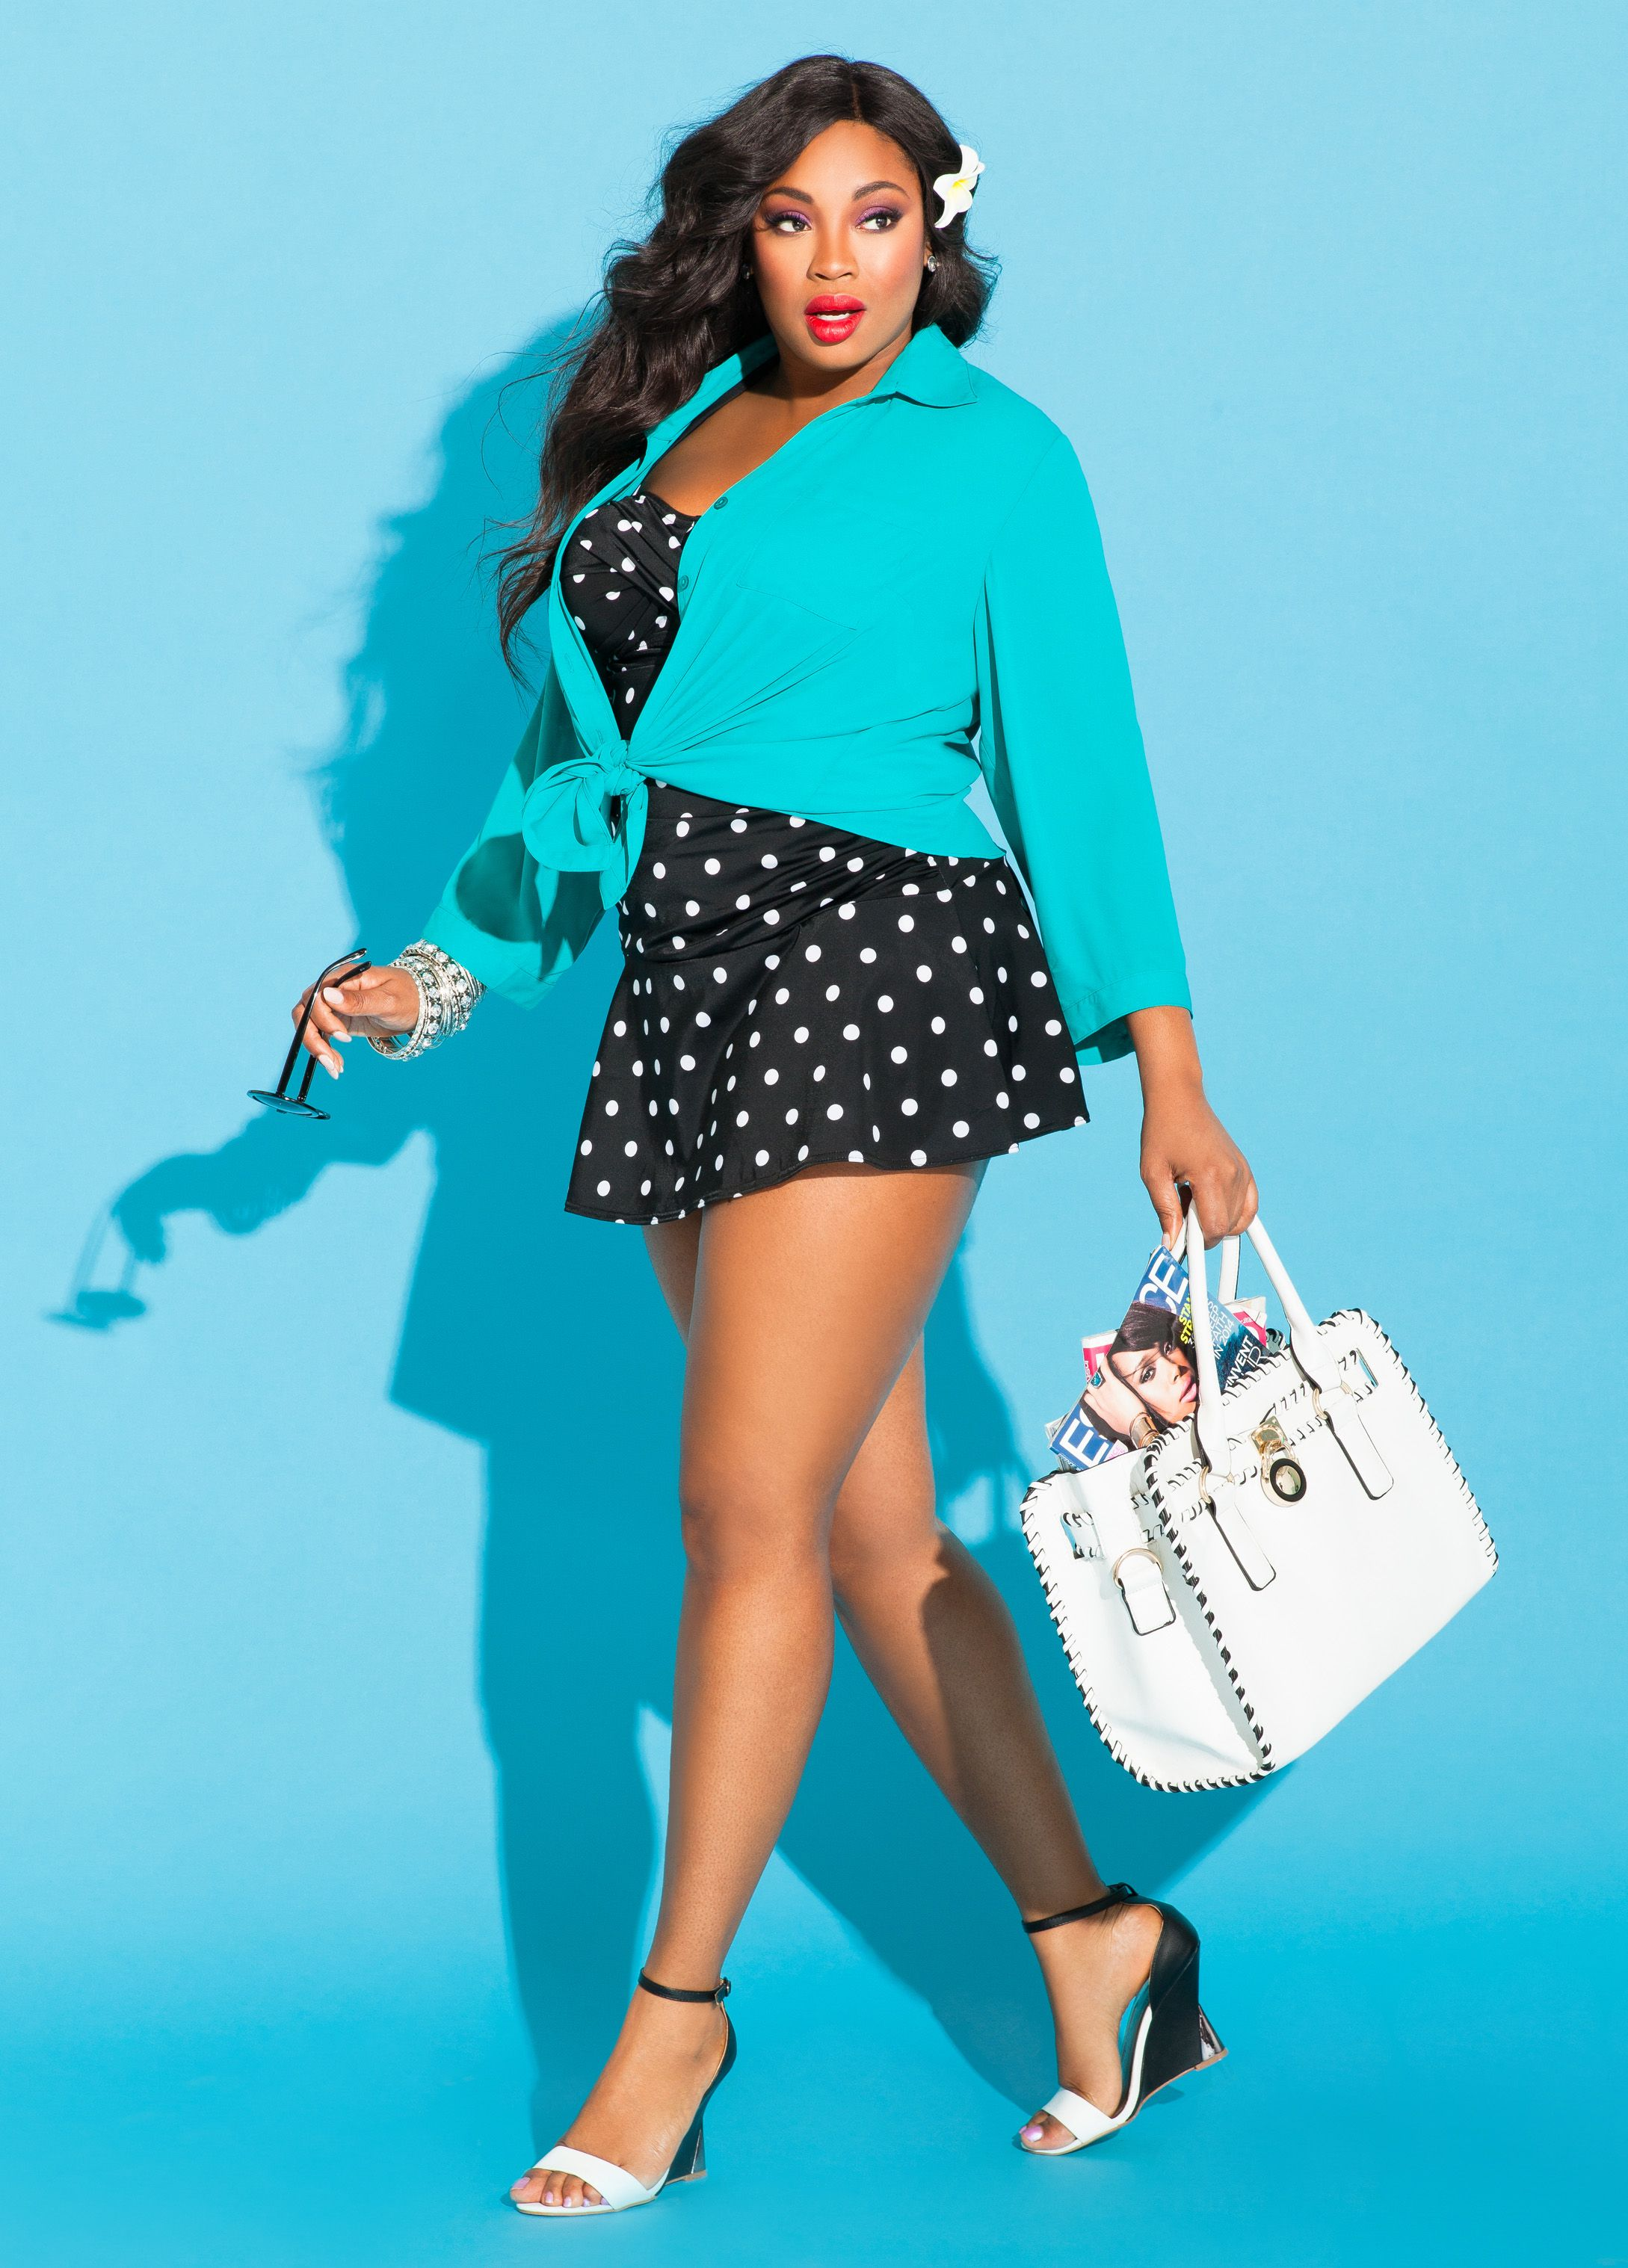 b6297ede4fd Ashley Stewart Model Liris Crosse